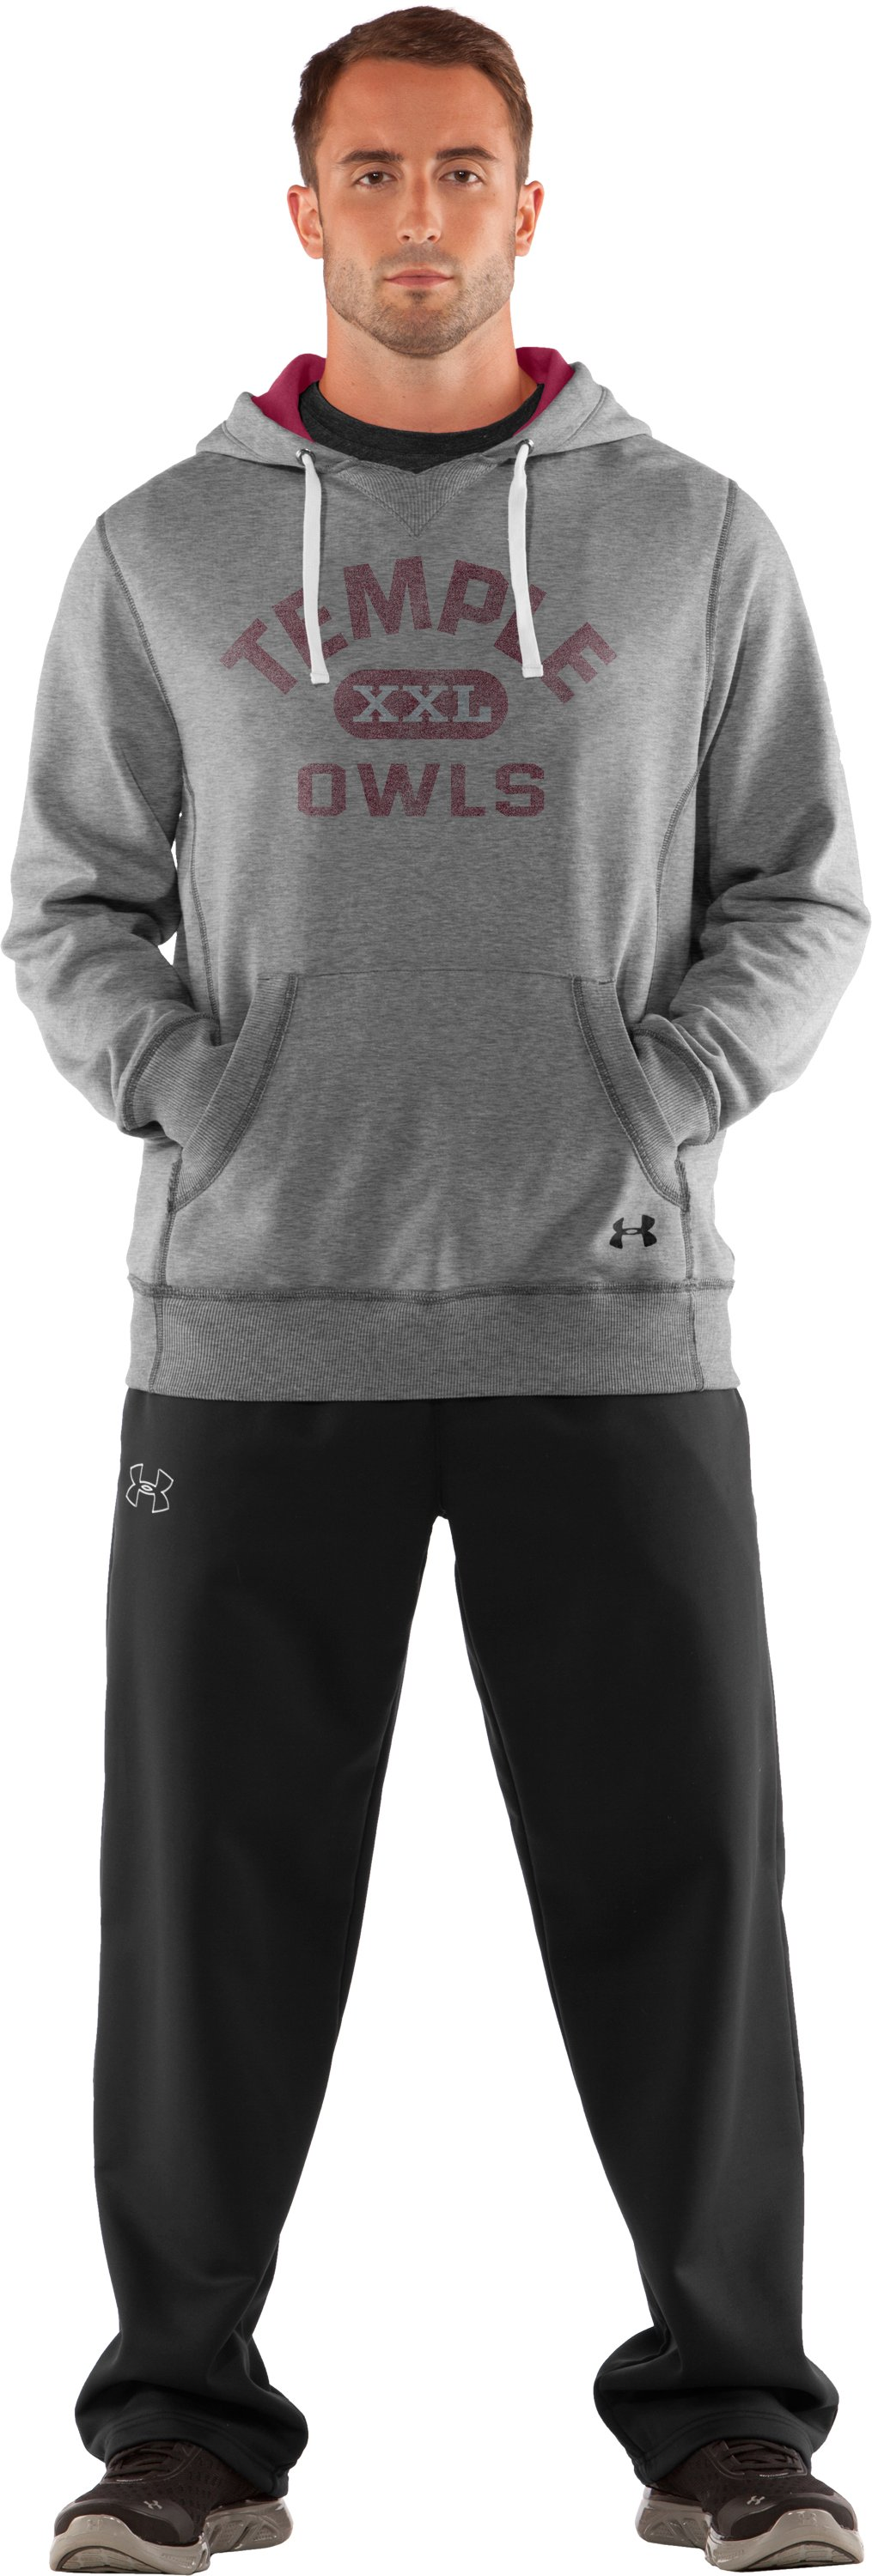 Men's Temple Under Armour® Legacy Hoodie, True Gray Heather, Front